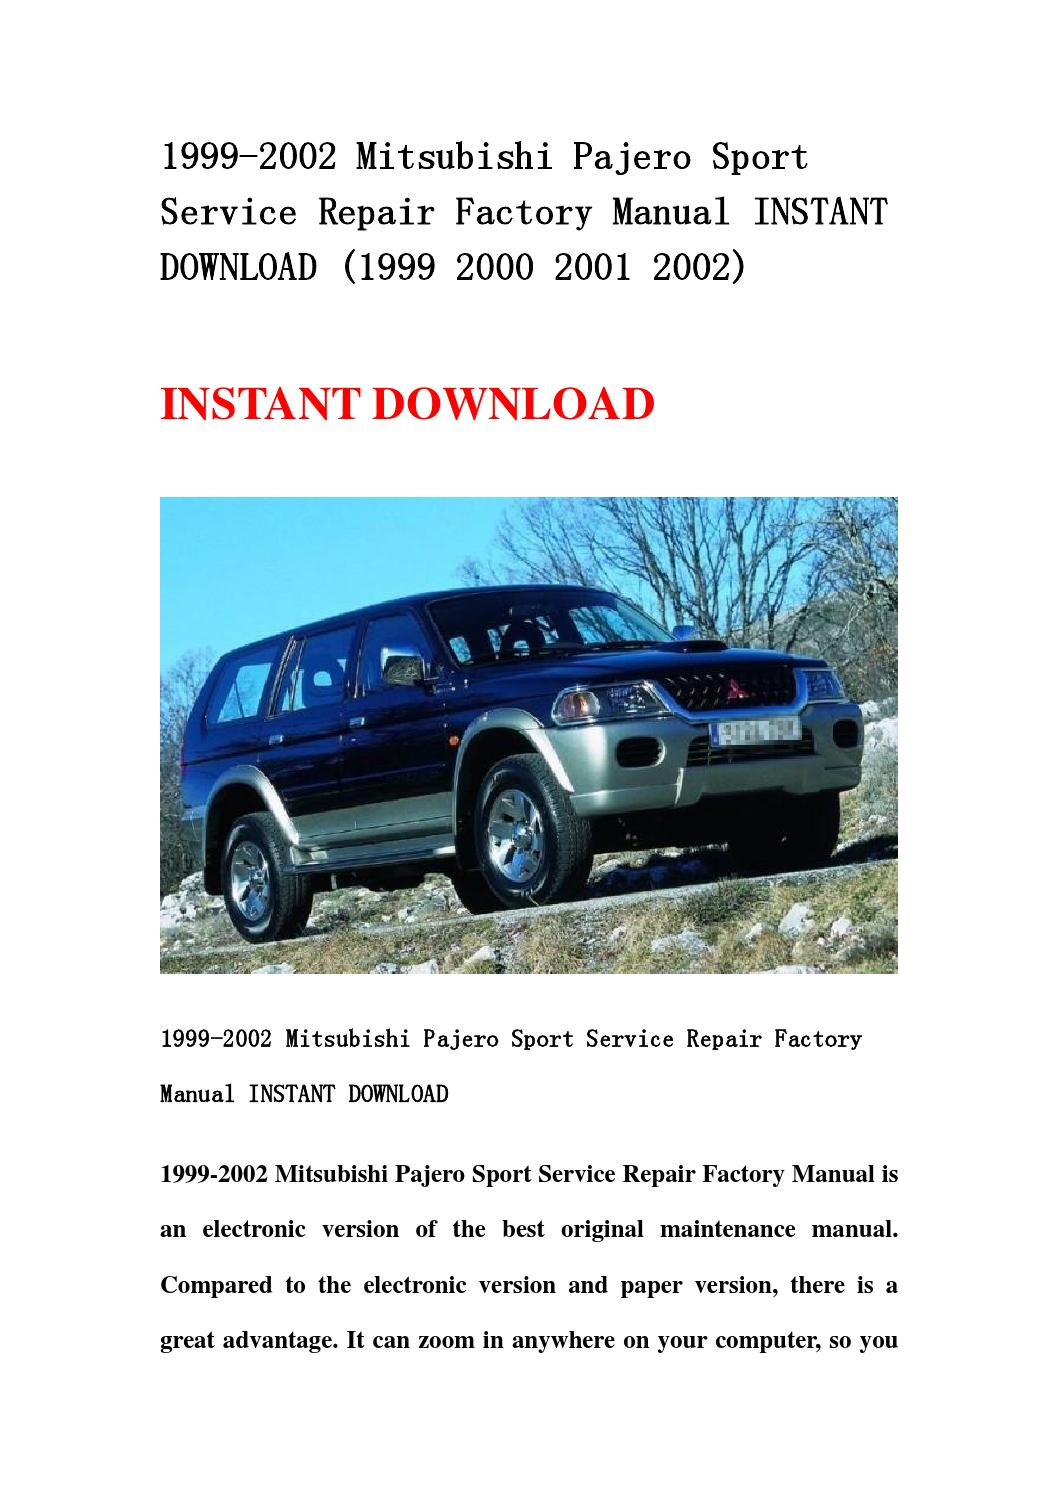 1999 2002 mitsubishi pajero sport service repair factory manual instant  download (1999 2000 2001 200 by hhsegfhnn - issuu